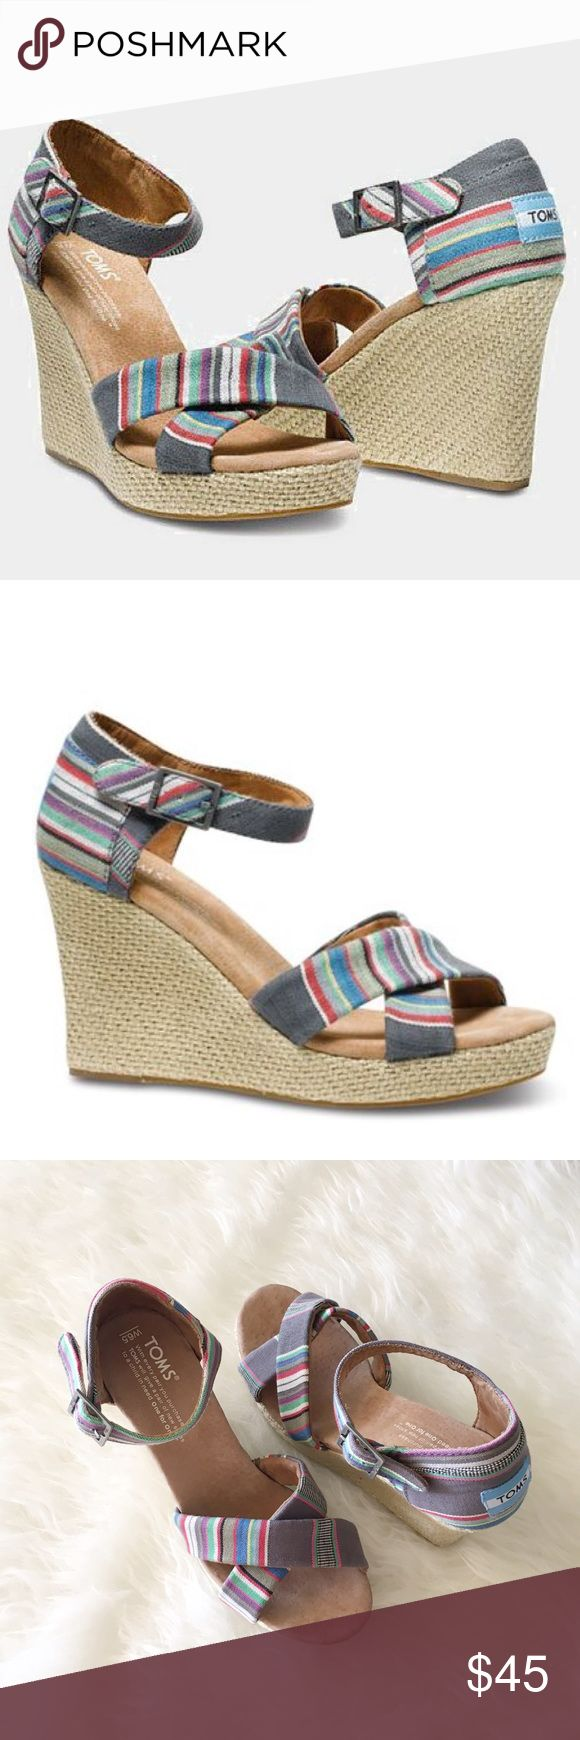 TOMS Denim Stripe strait wedges. Absolutely beautiful and in brand new condition. TOMS Denim striped wedges sandals. Size 6.5. Never worn. Very comfortable. TOMS Shoes Wedges